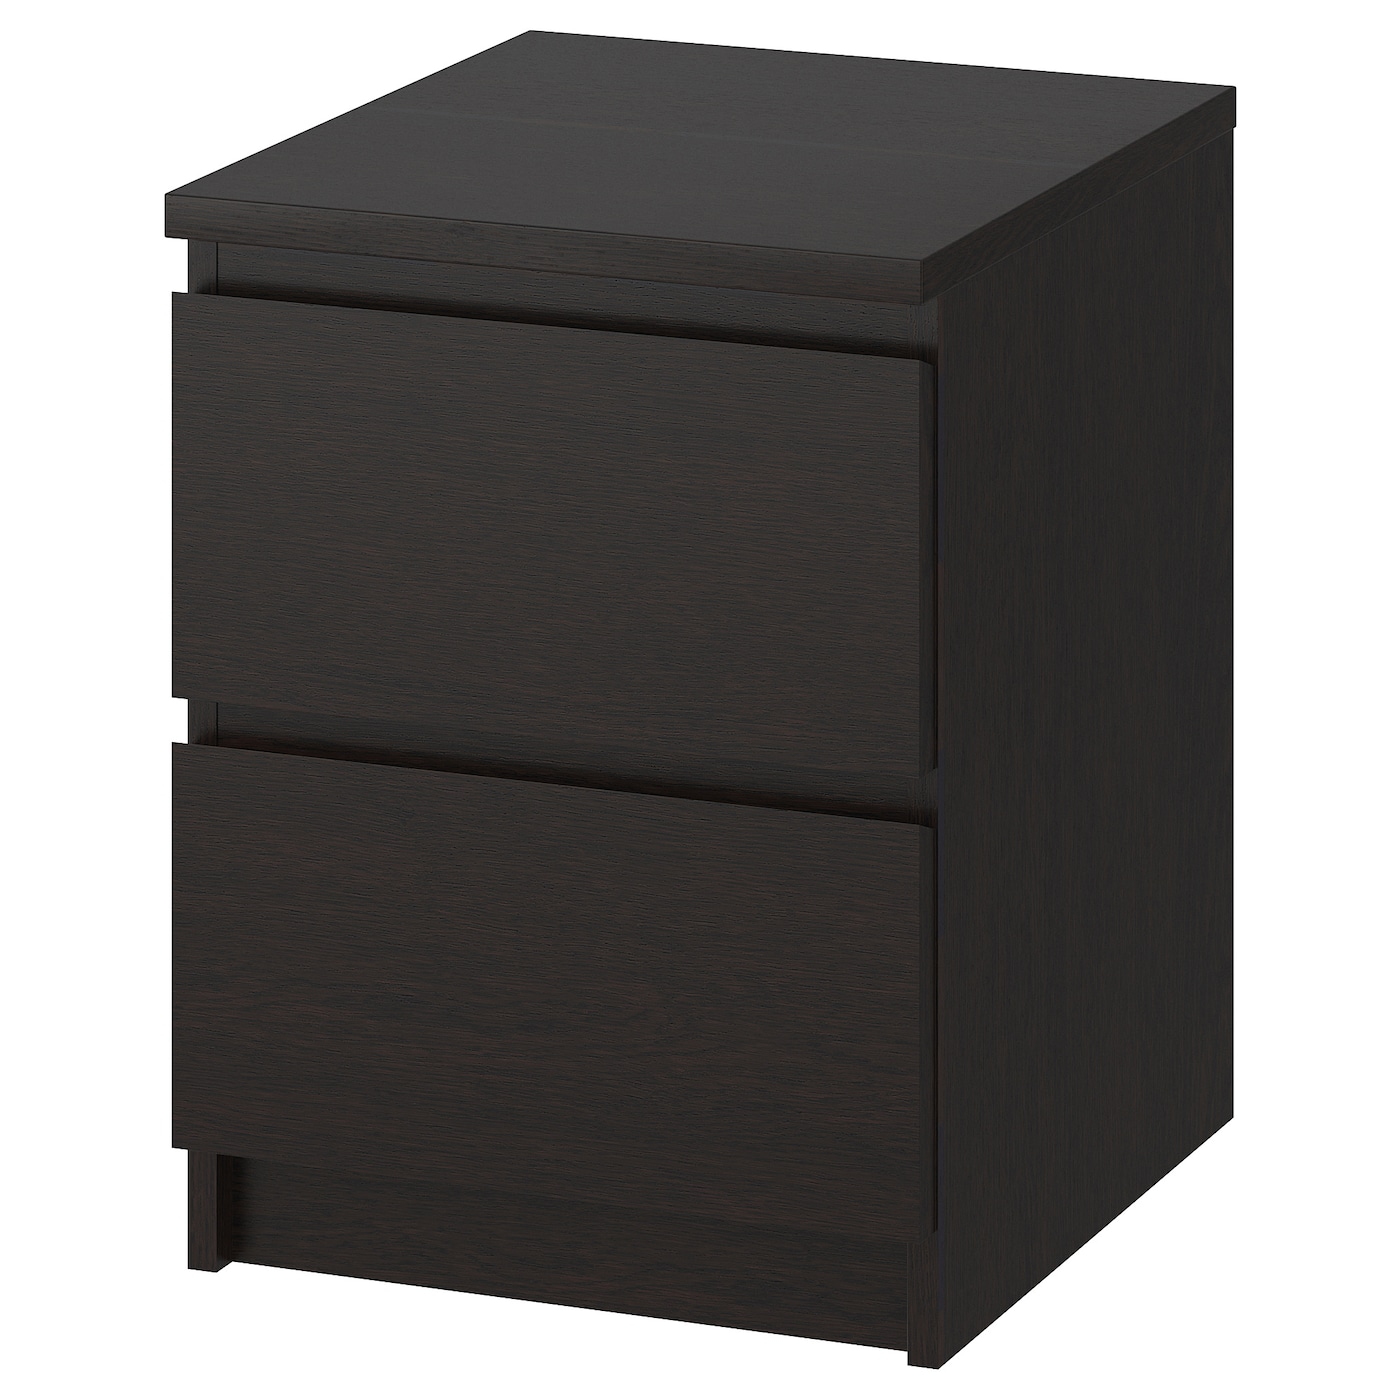 "MALM 12-drawer chest - black-brown 12 12/12x112 12/12 "" (120x1212 cm)"